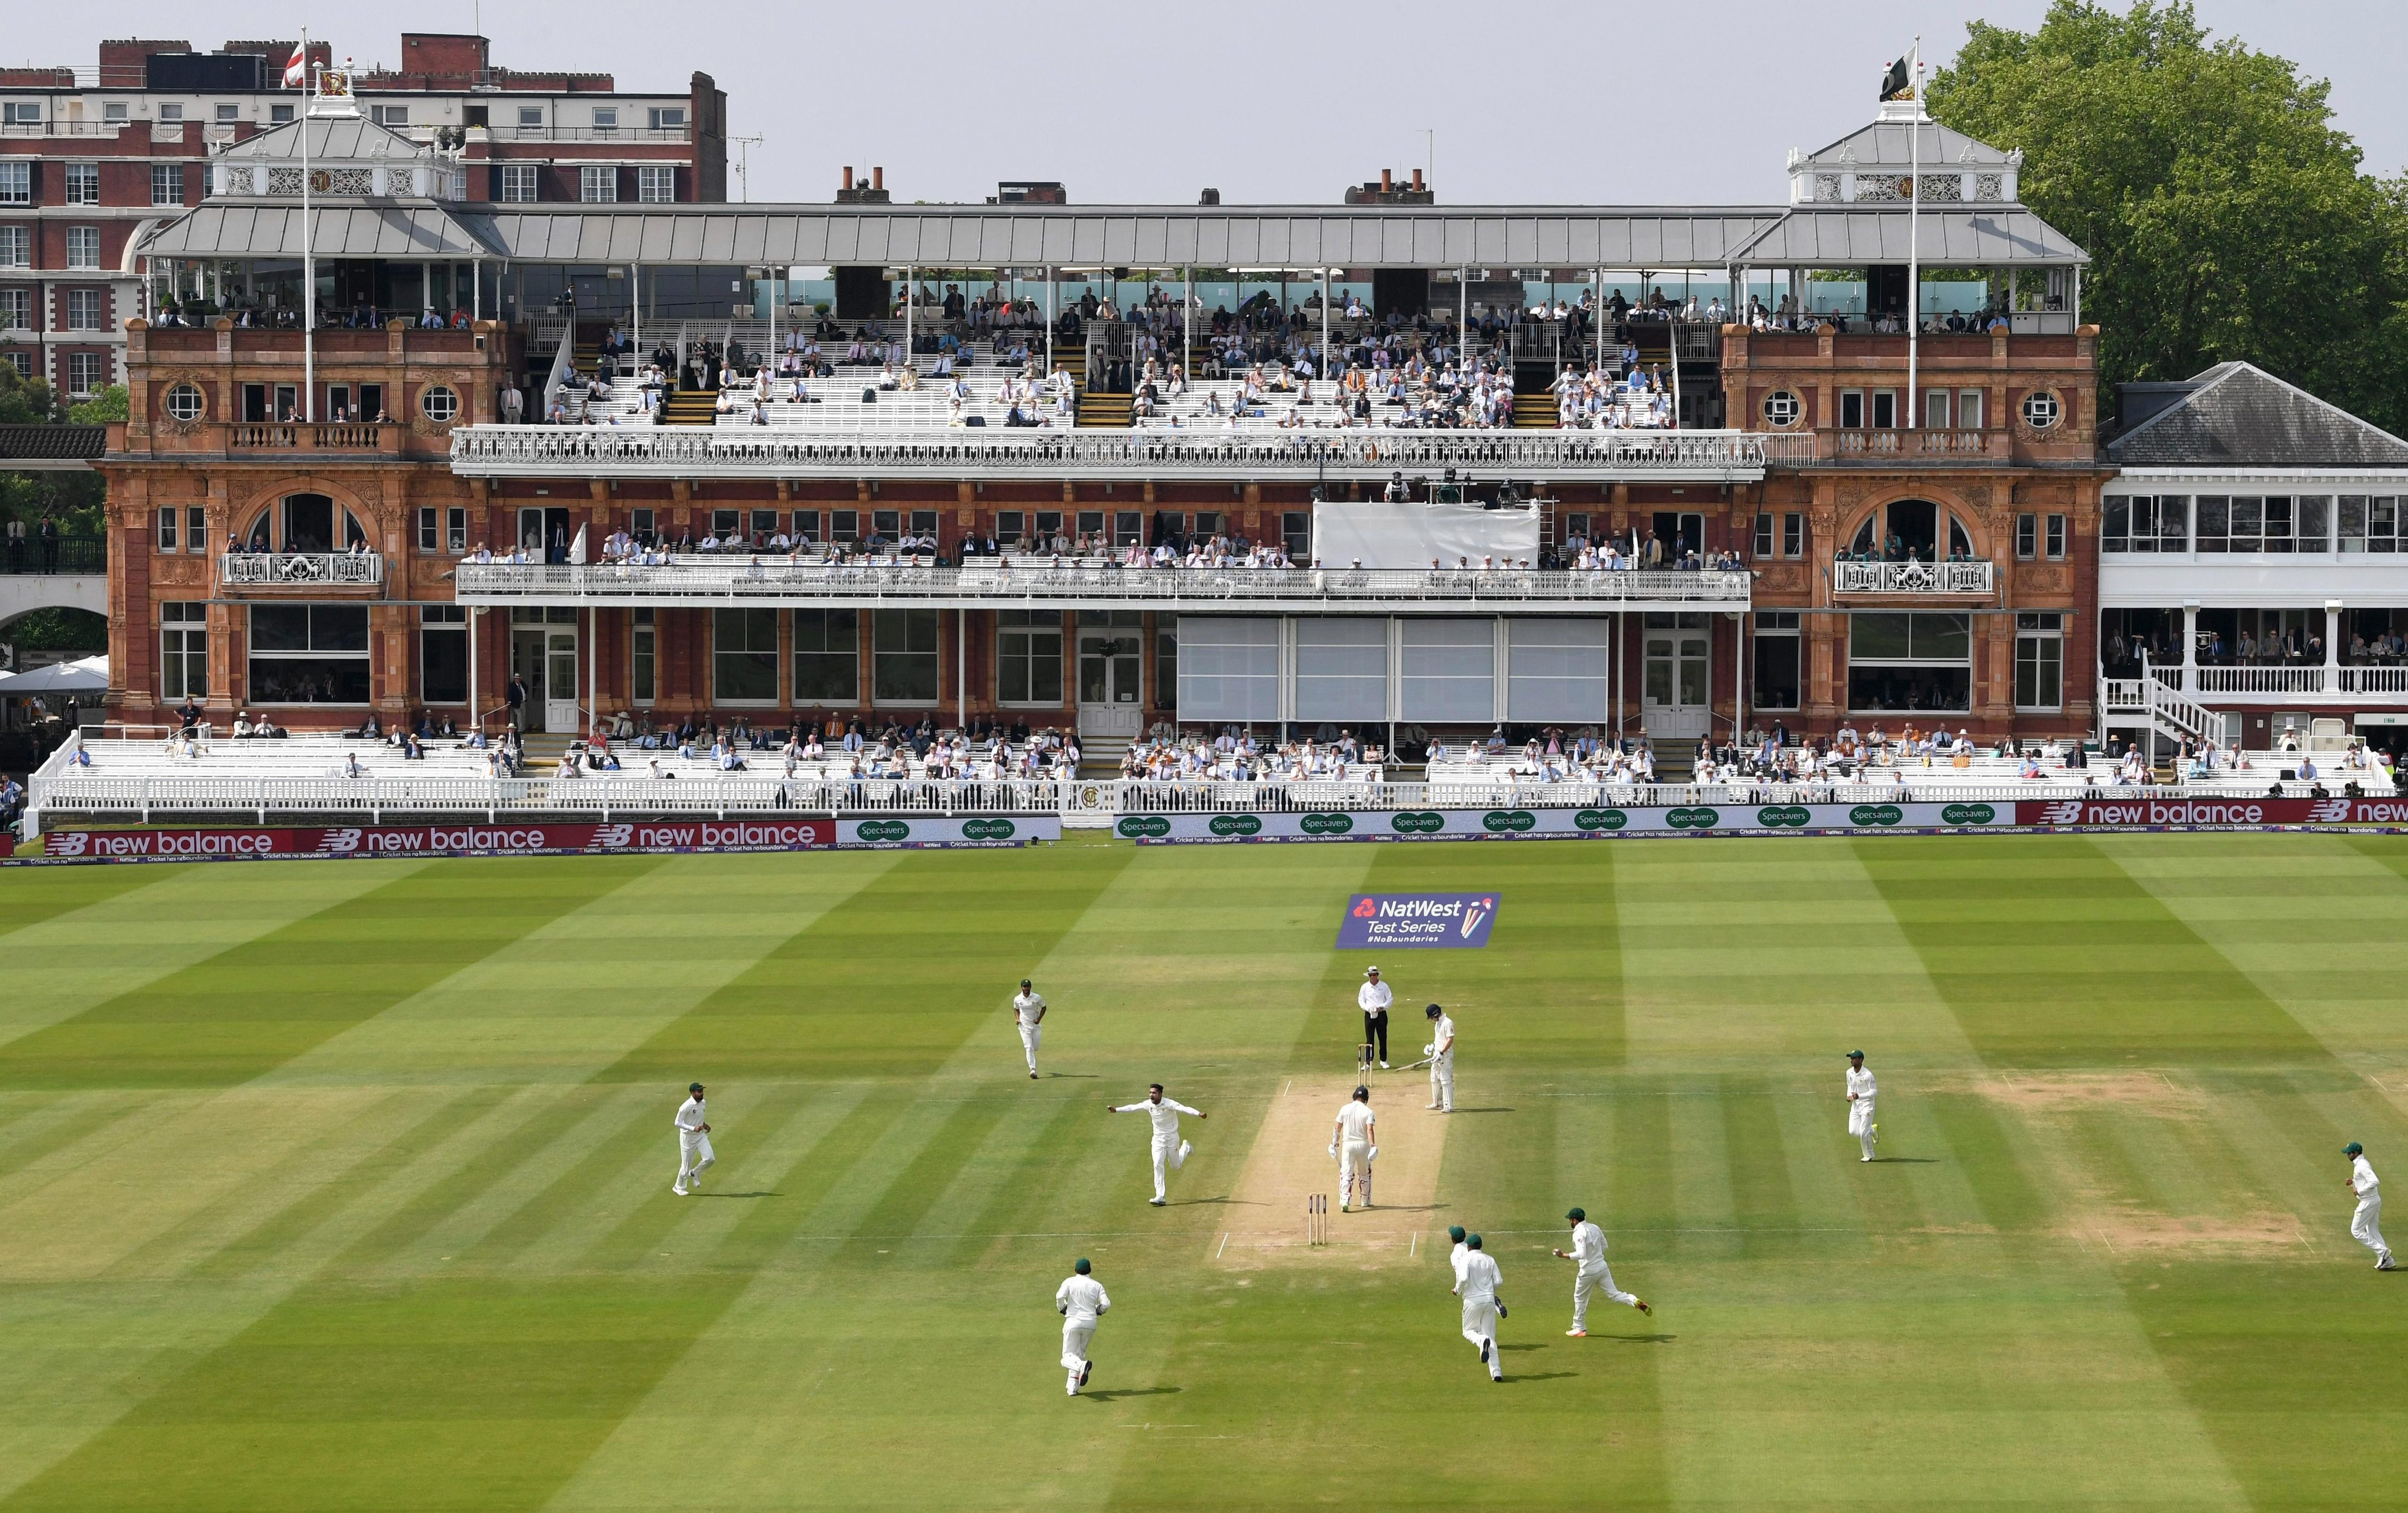 Lord's could play host to a four-day Test between England and Ireland next July